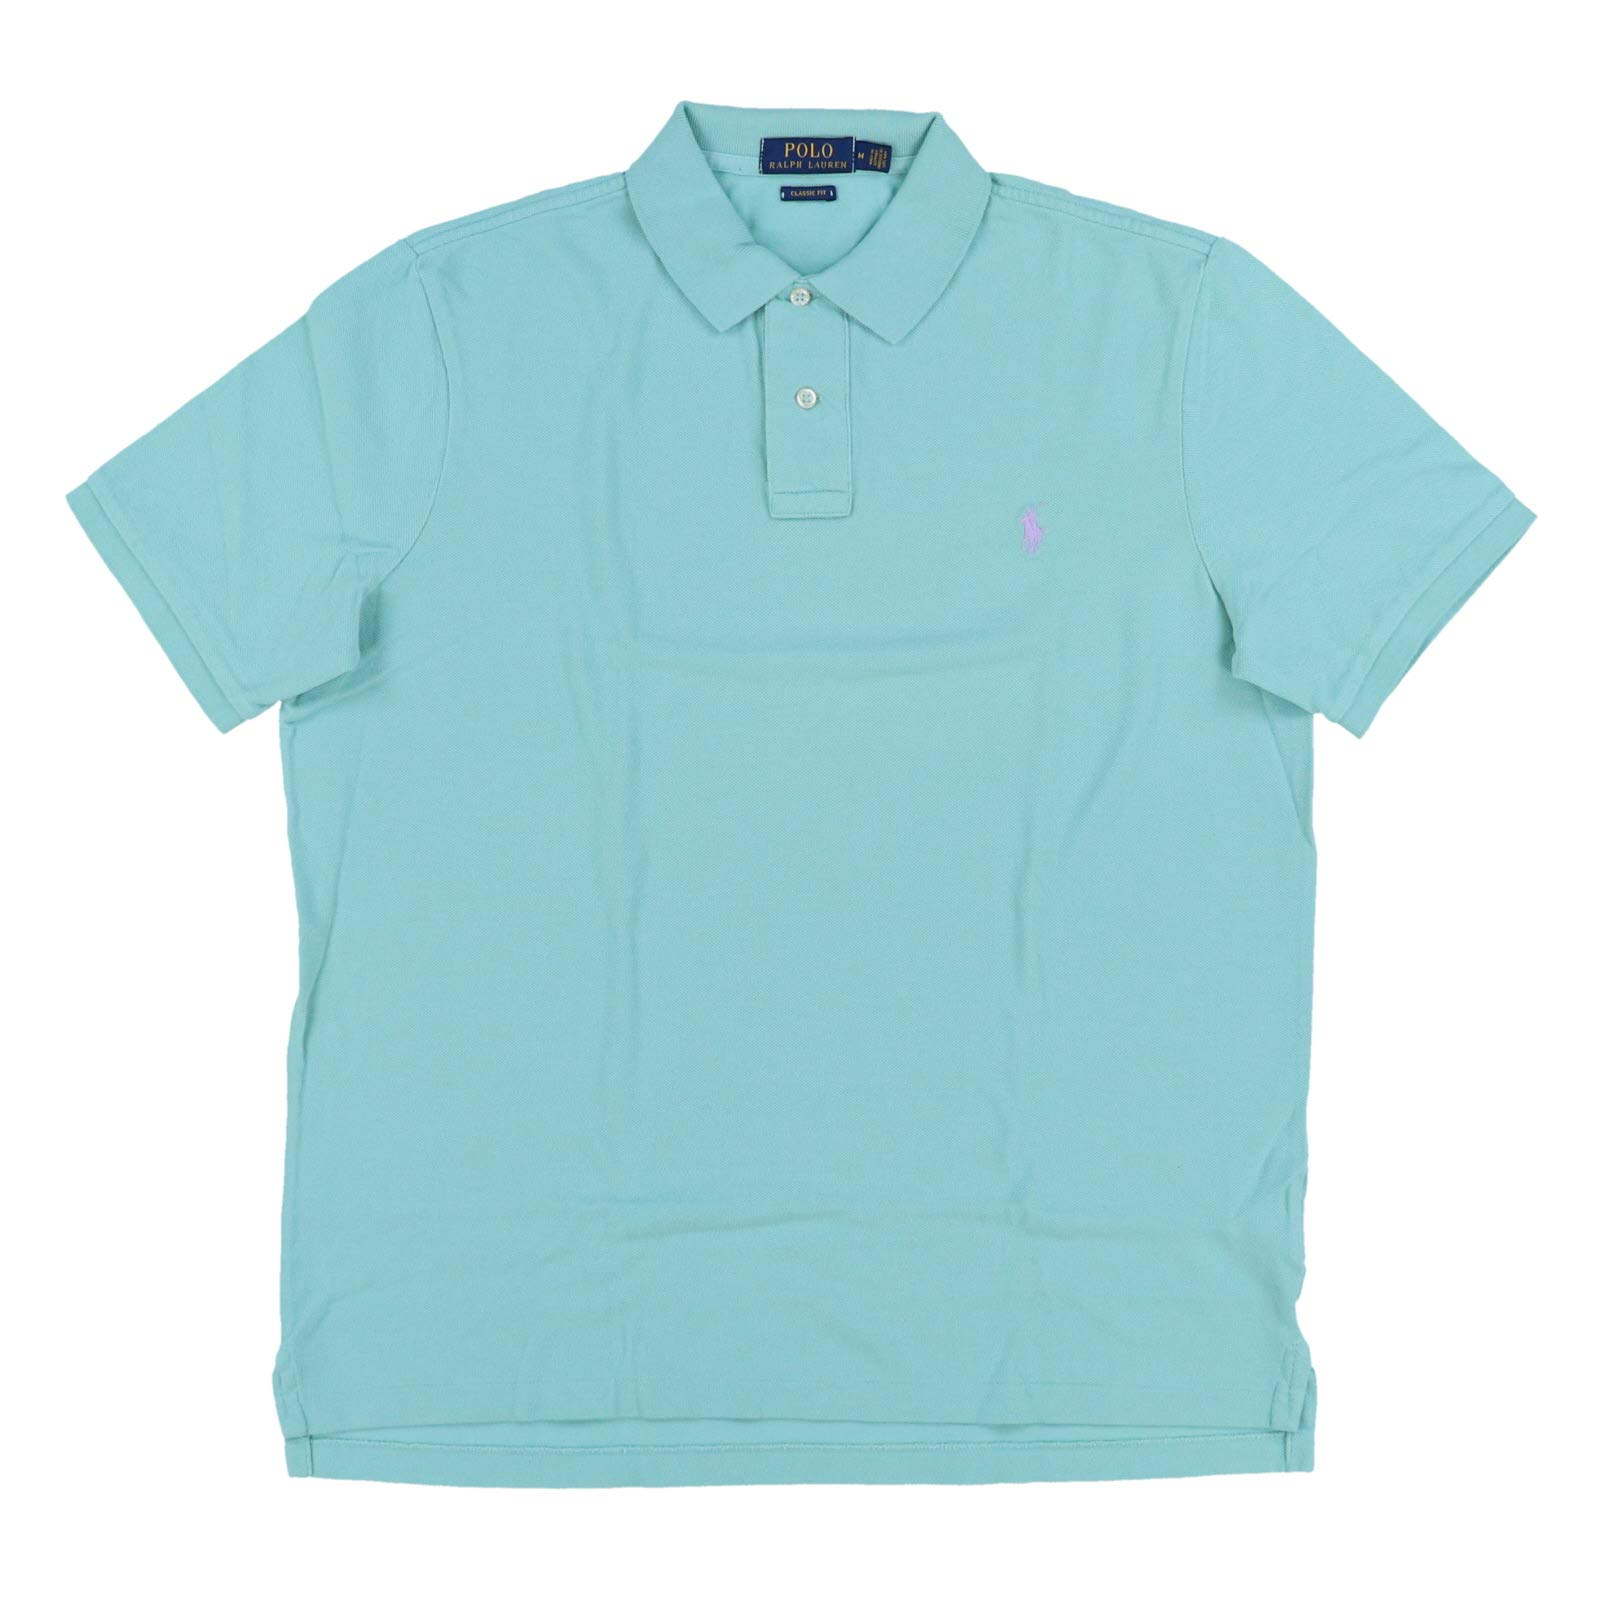 Polo Ralph Lauren Mens Classic Mesh Polo Shirt (XS, Sea Green)